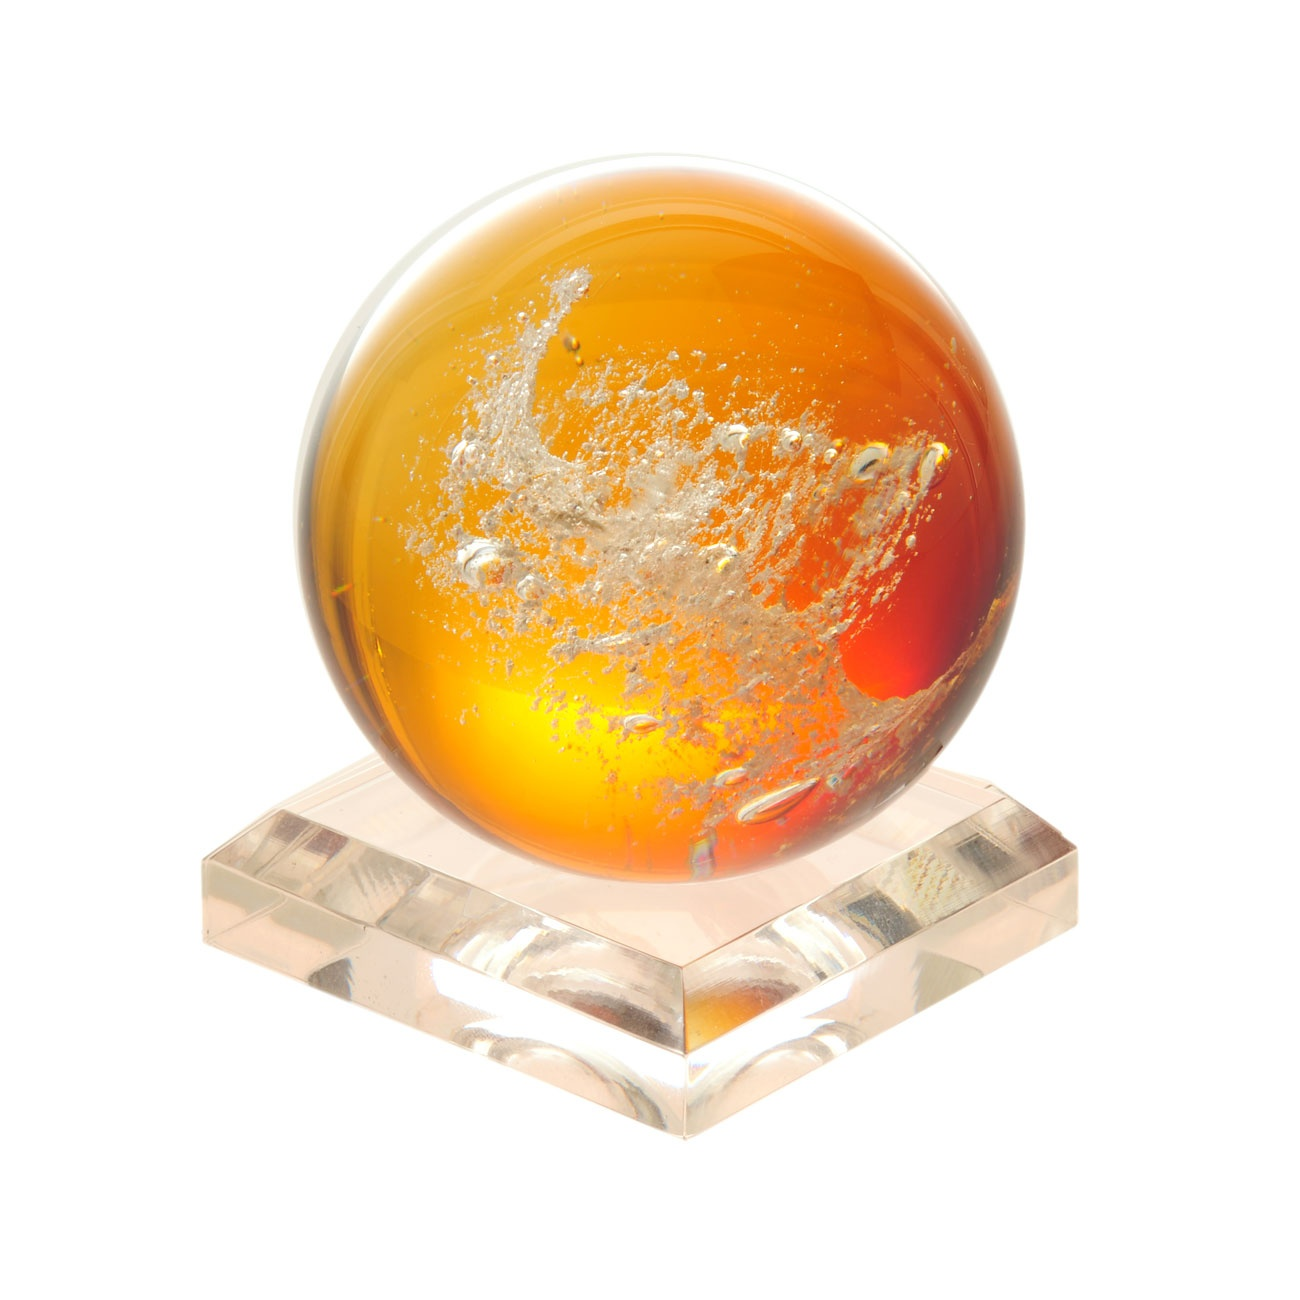 Grateful Glass20-7216orange_orb_1.jpg546